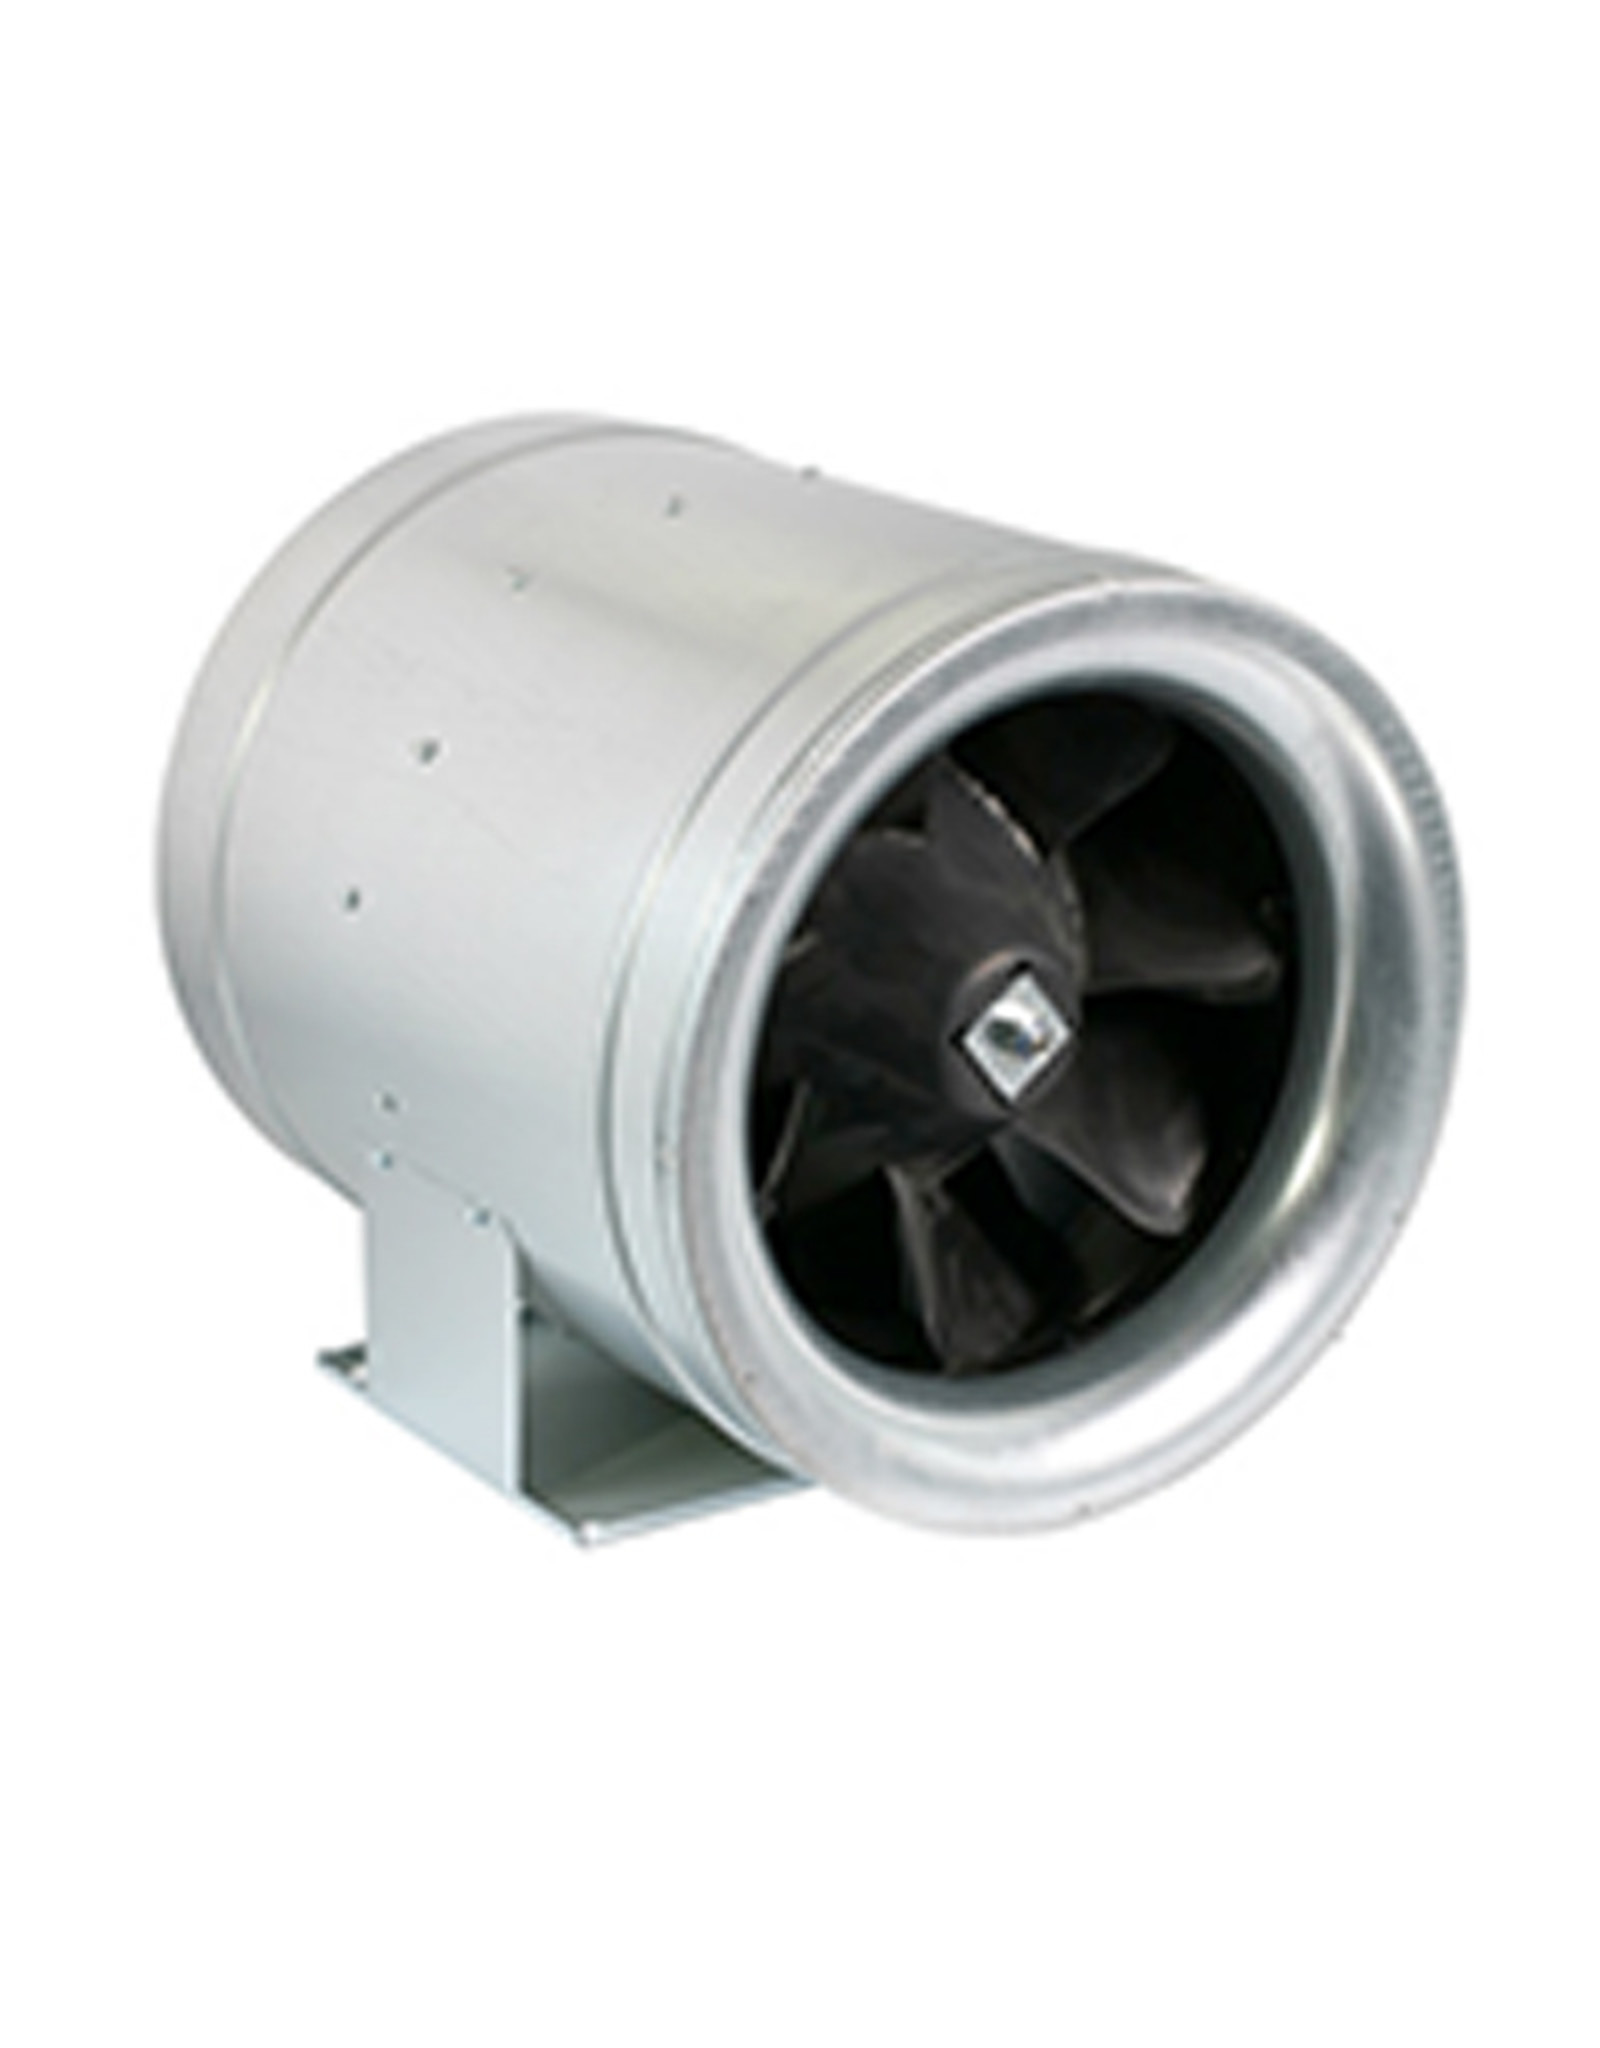 CAN CAN MAX FAN 315 / 3510